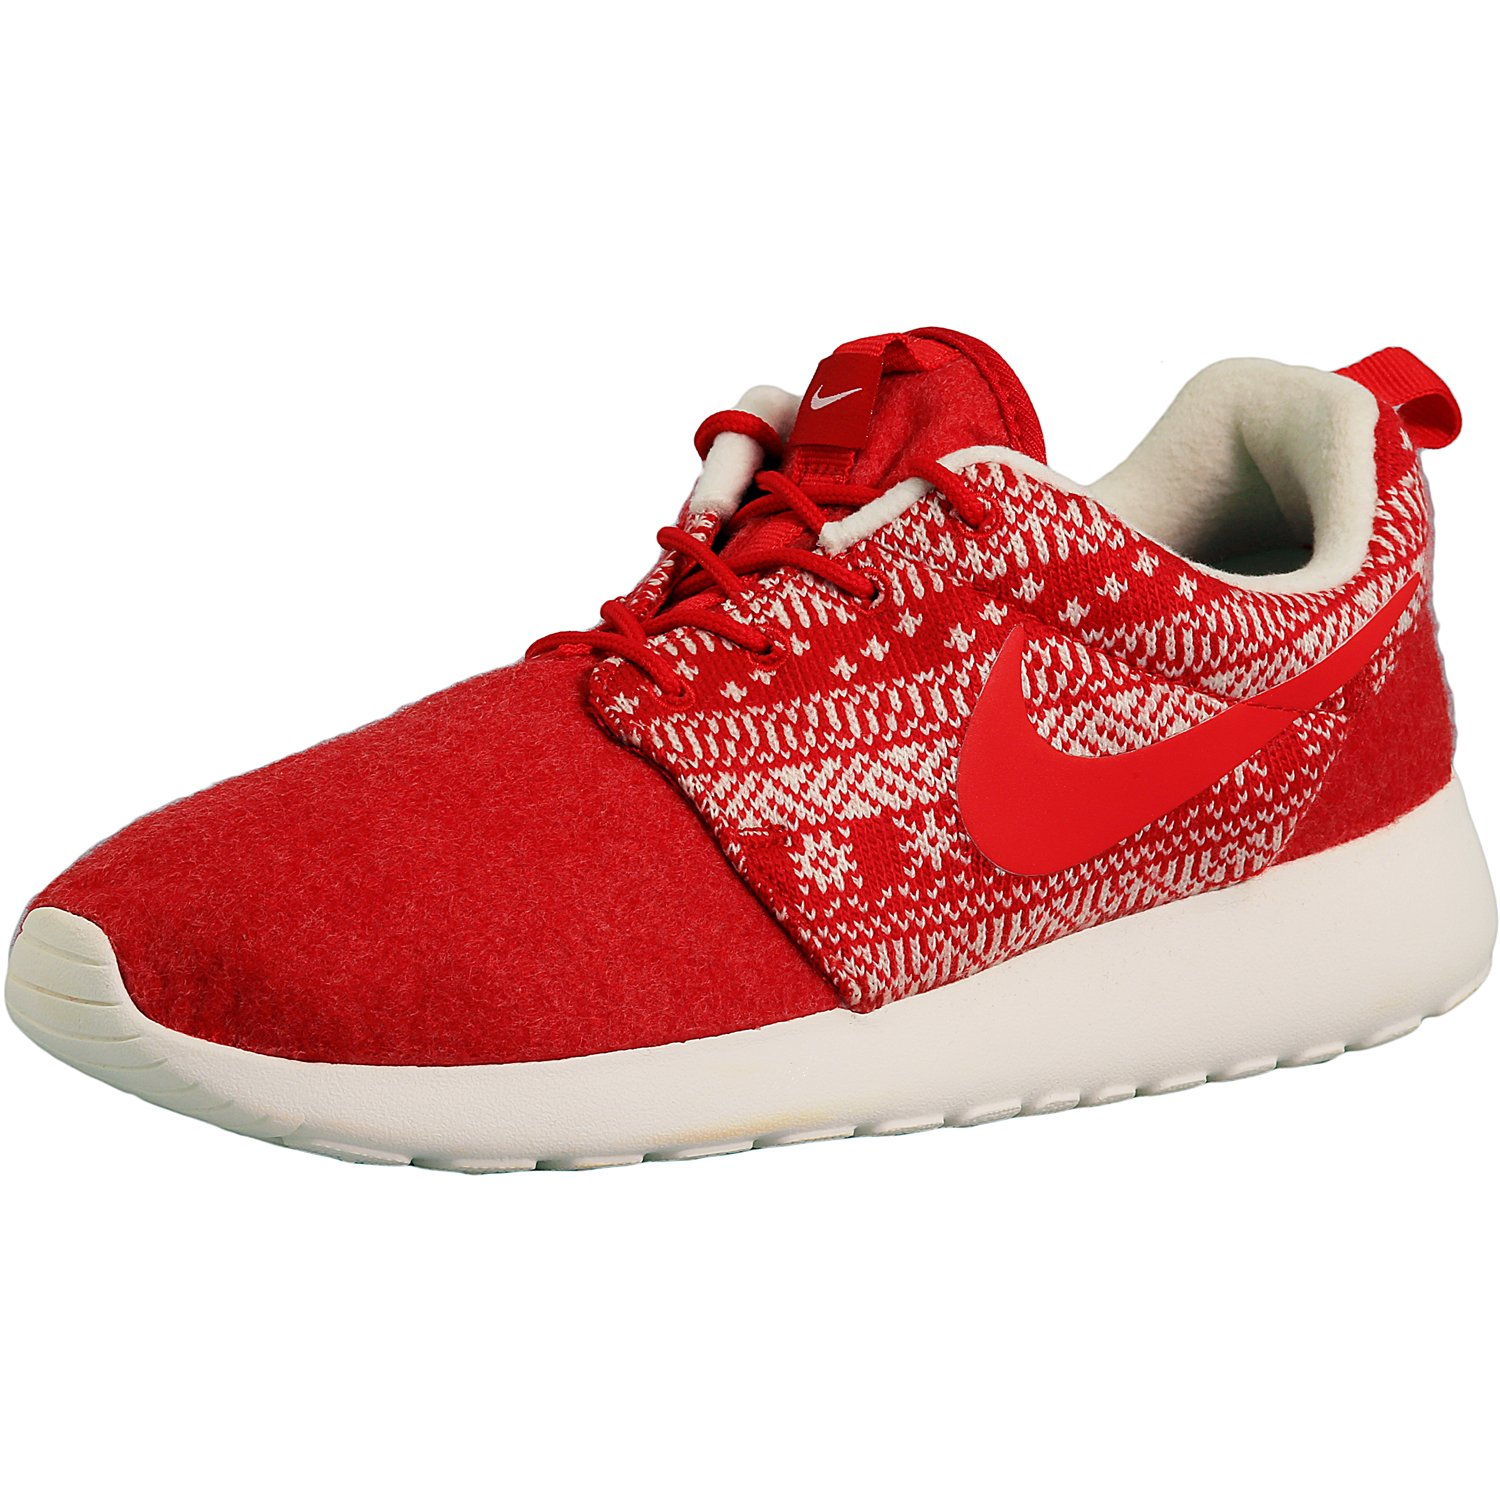 715a617718 Nike Women's Roshe One 661 Ankle-High Cotton Fashion Sneaker - 8.5M ...